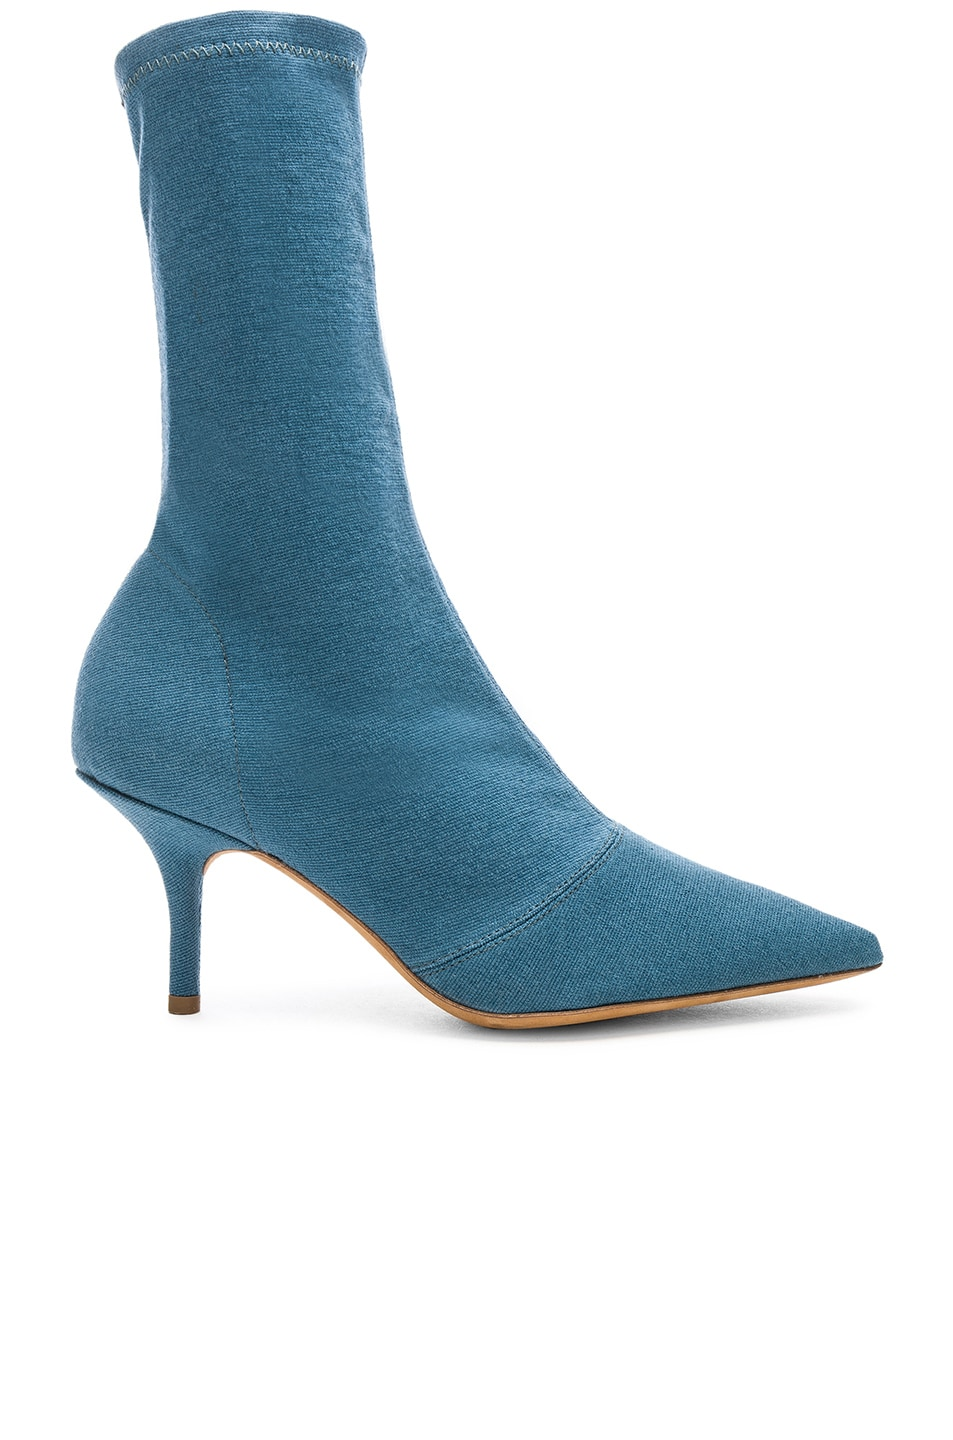 Image 1 of YEEZY Season 7 Stretch Ankle Bootie in Aqua